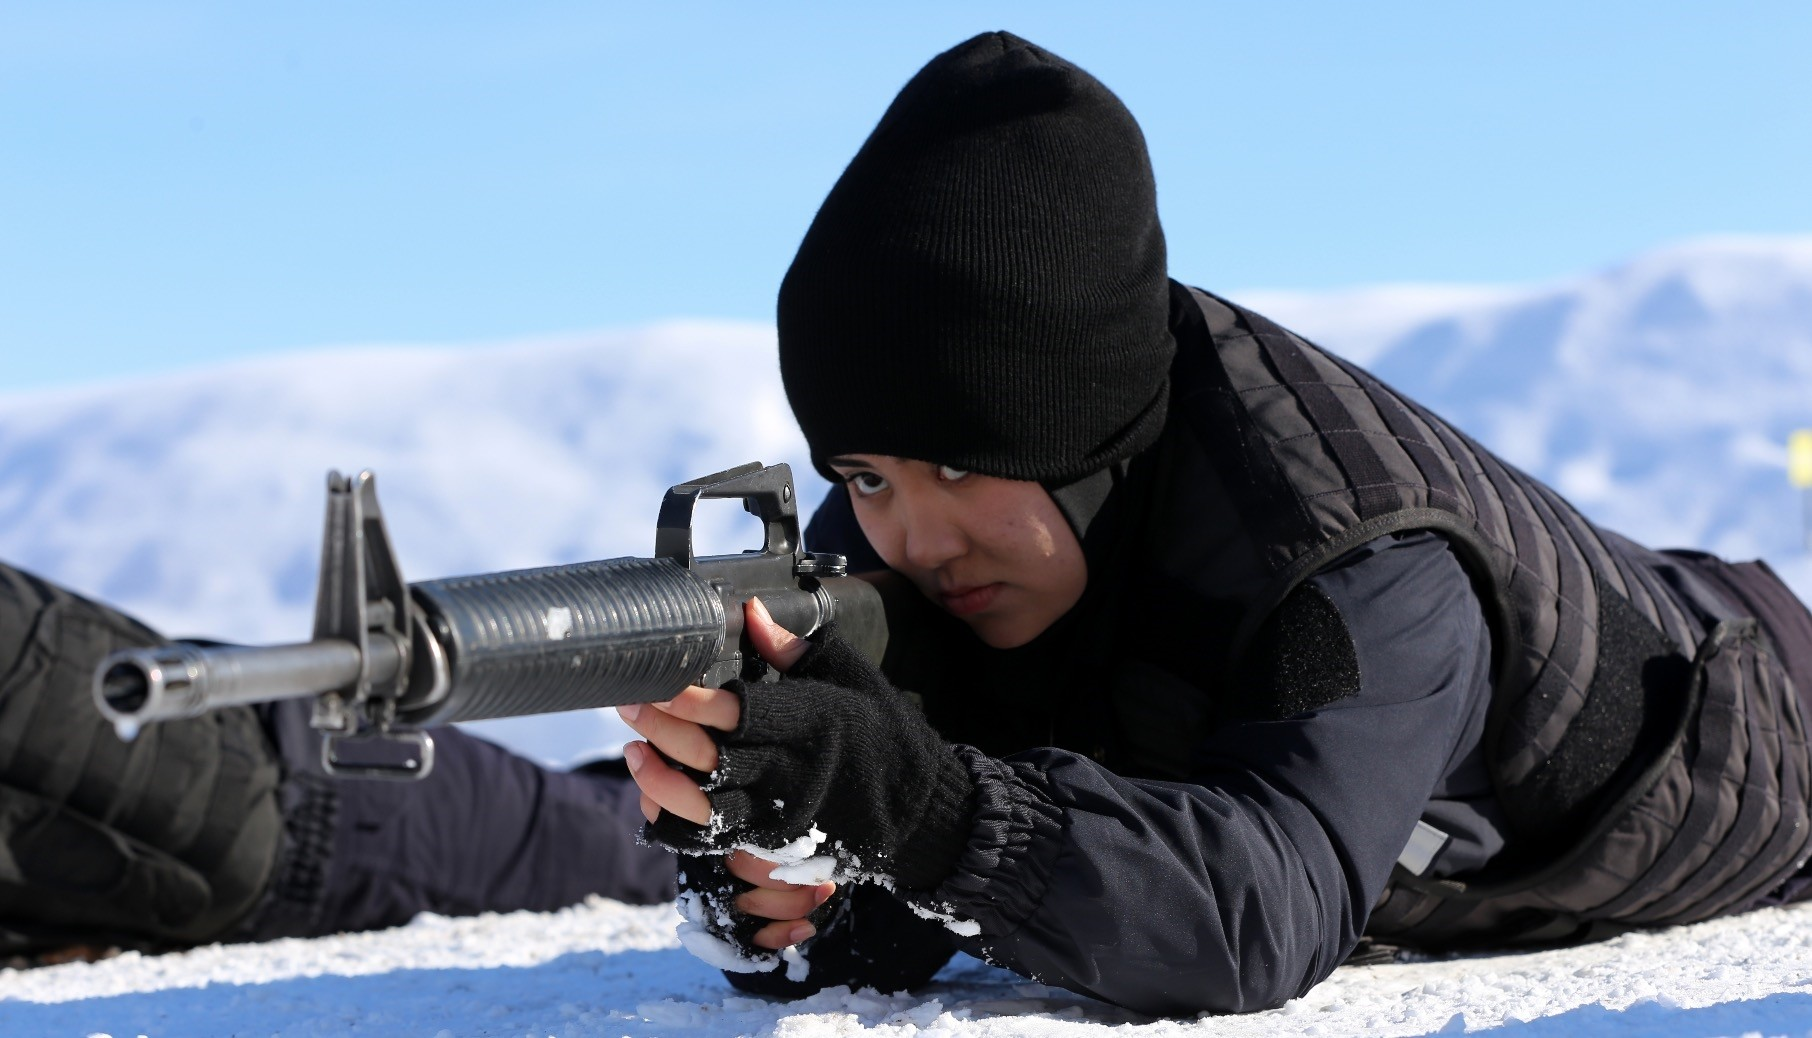 An Afghan policewoman aims her rifle during a training session in Sivas on Jan. 23, 2019.